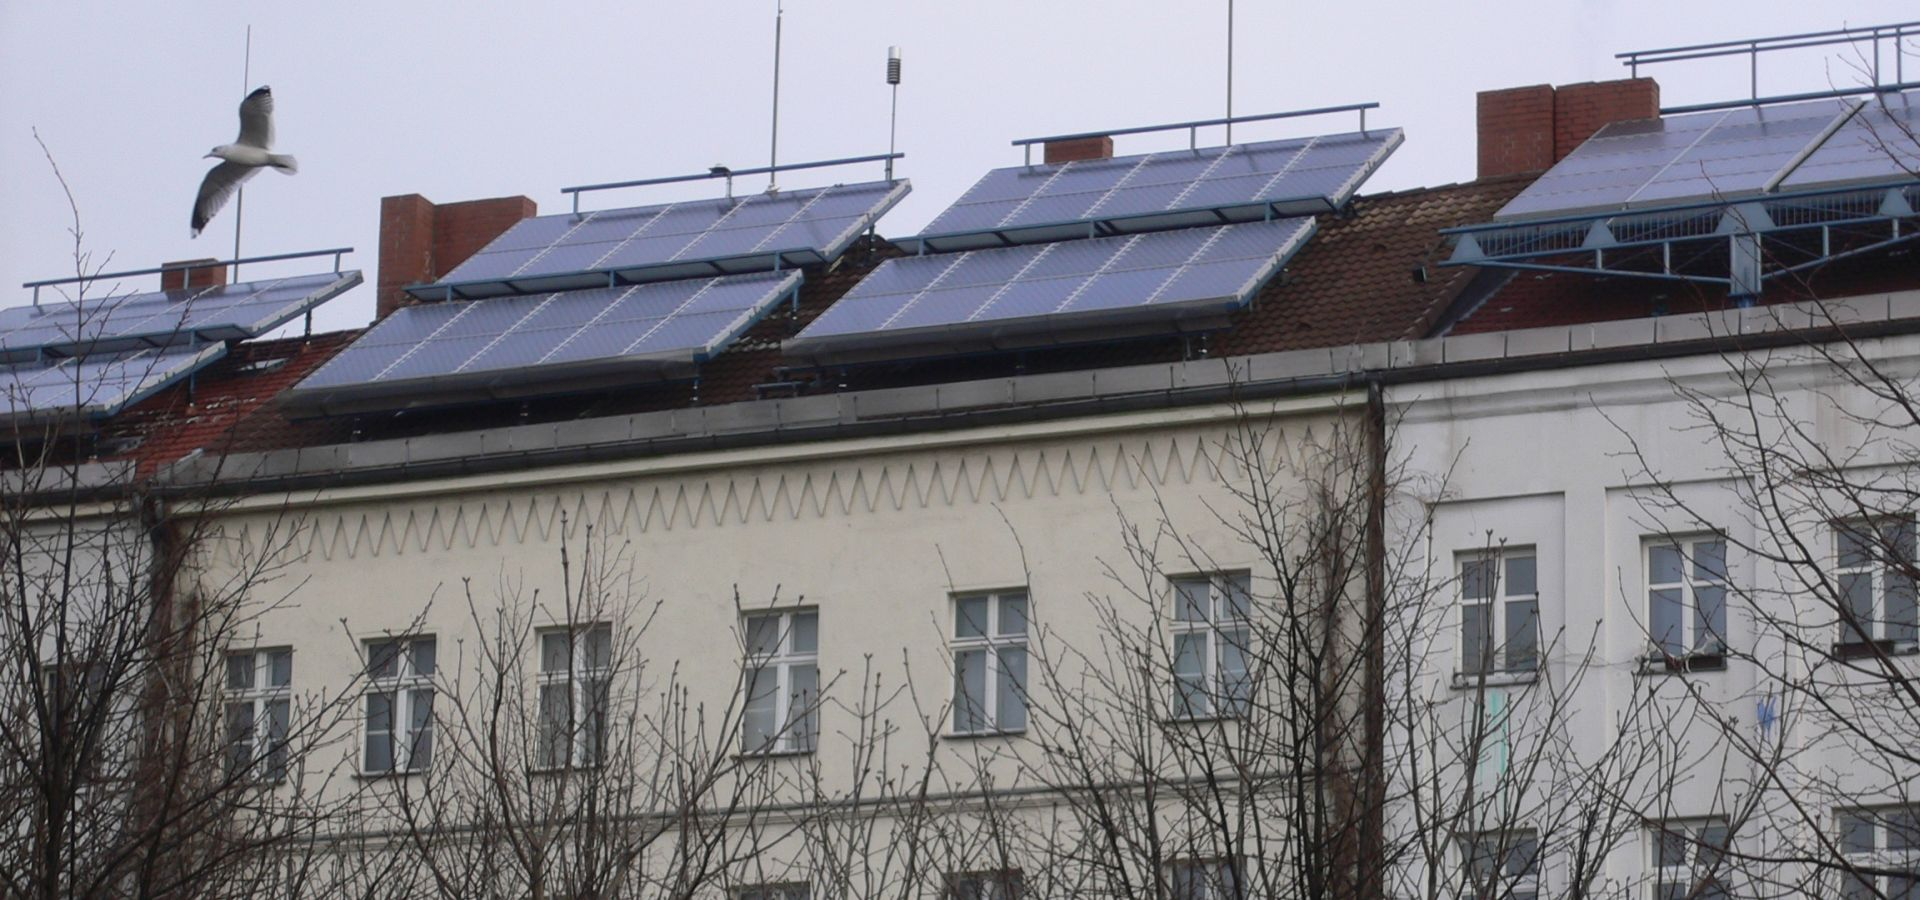 PV rooftop panels in Berlin